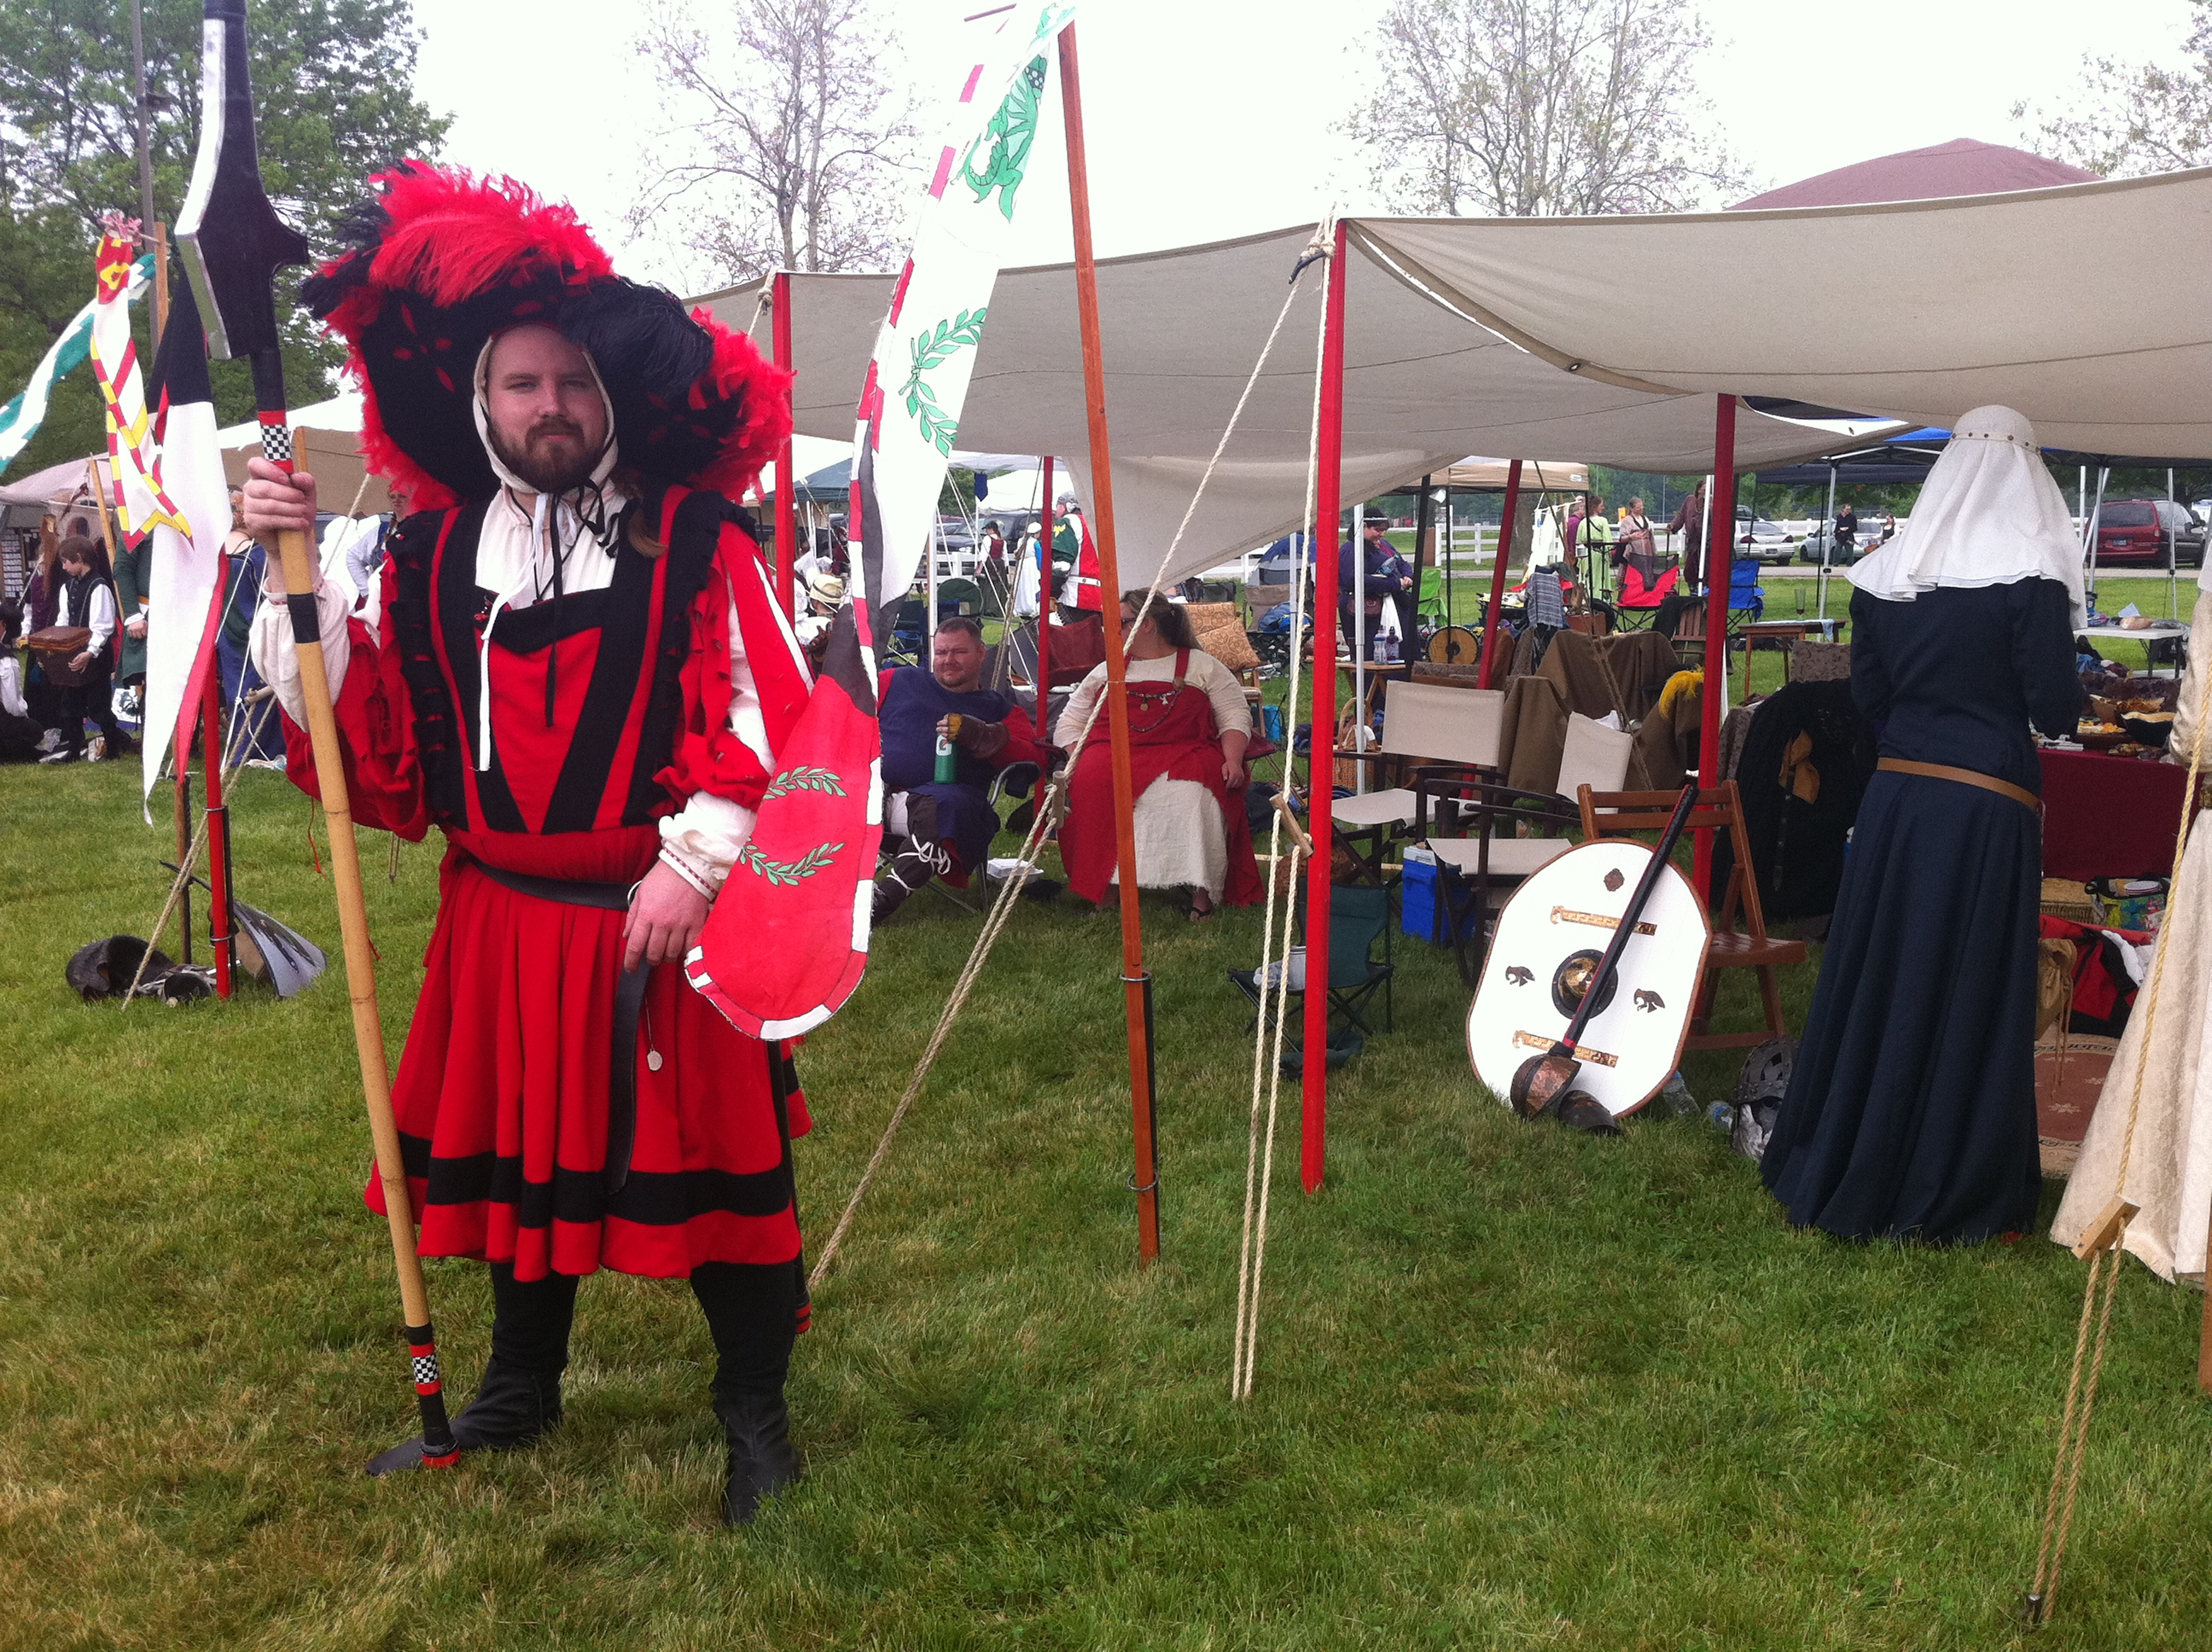 a12e3eb961f5f Landsknecht German Garb  Overview and Resources - General Sewing ...